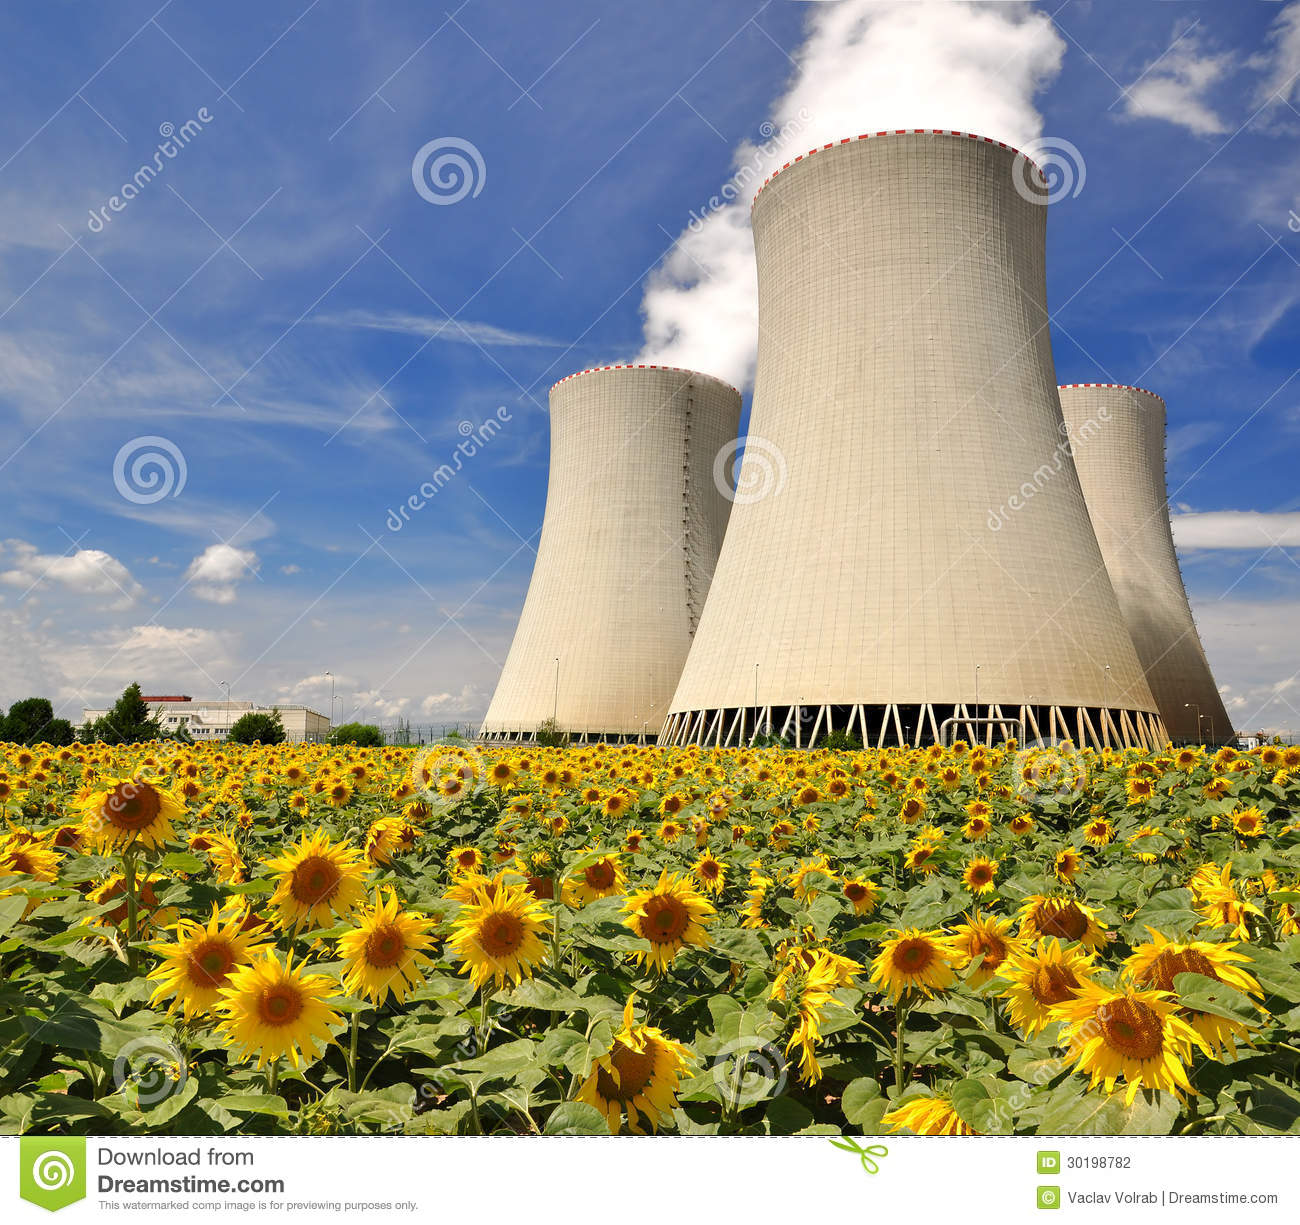 countrys nuclear power industry - 700×610